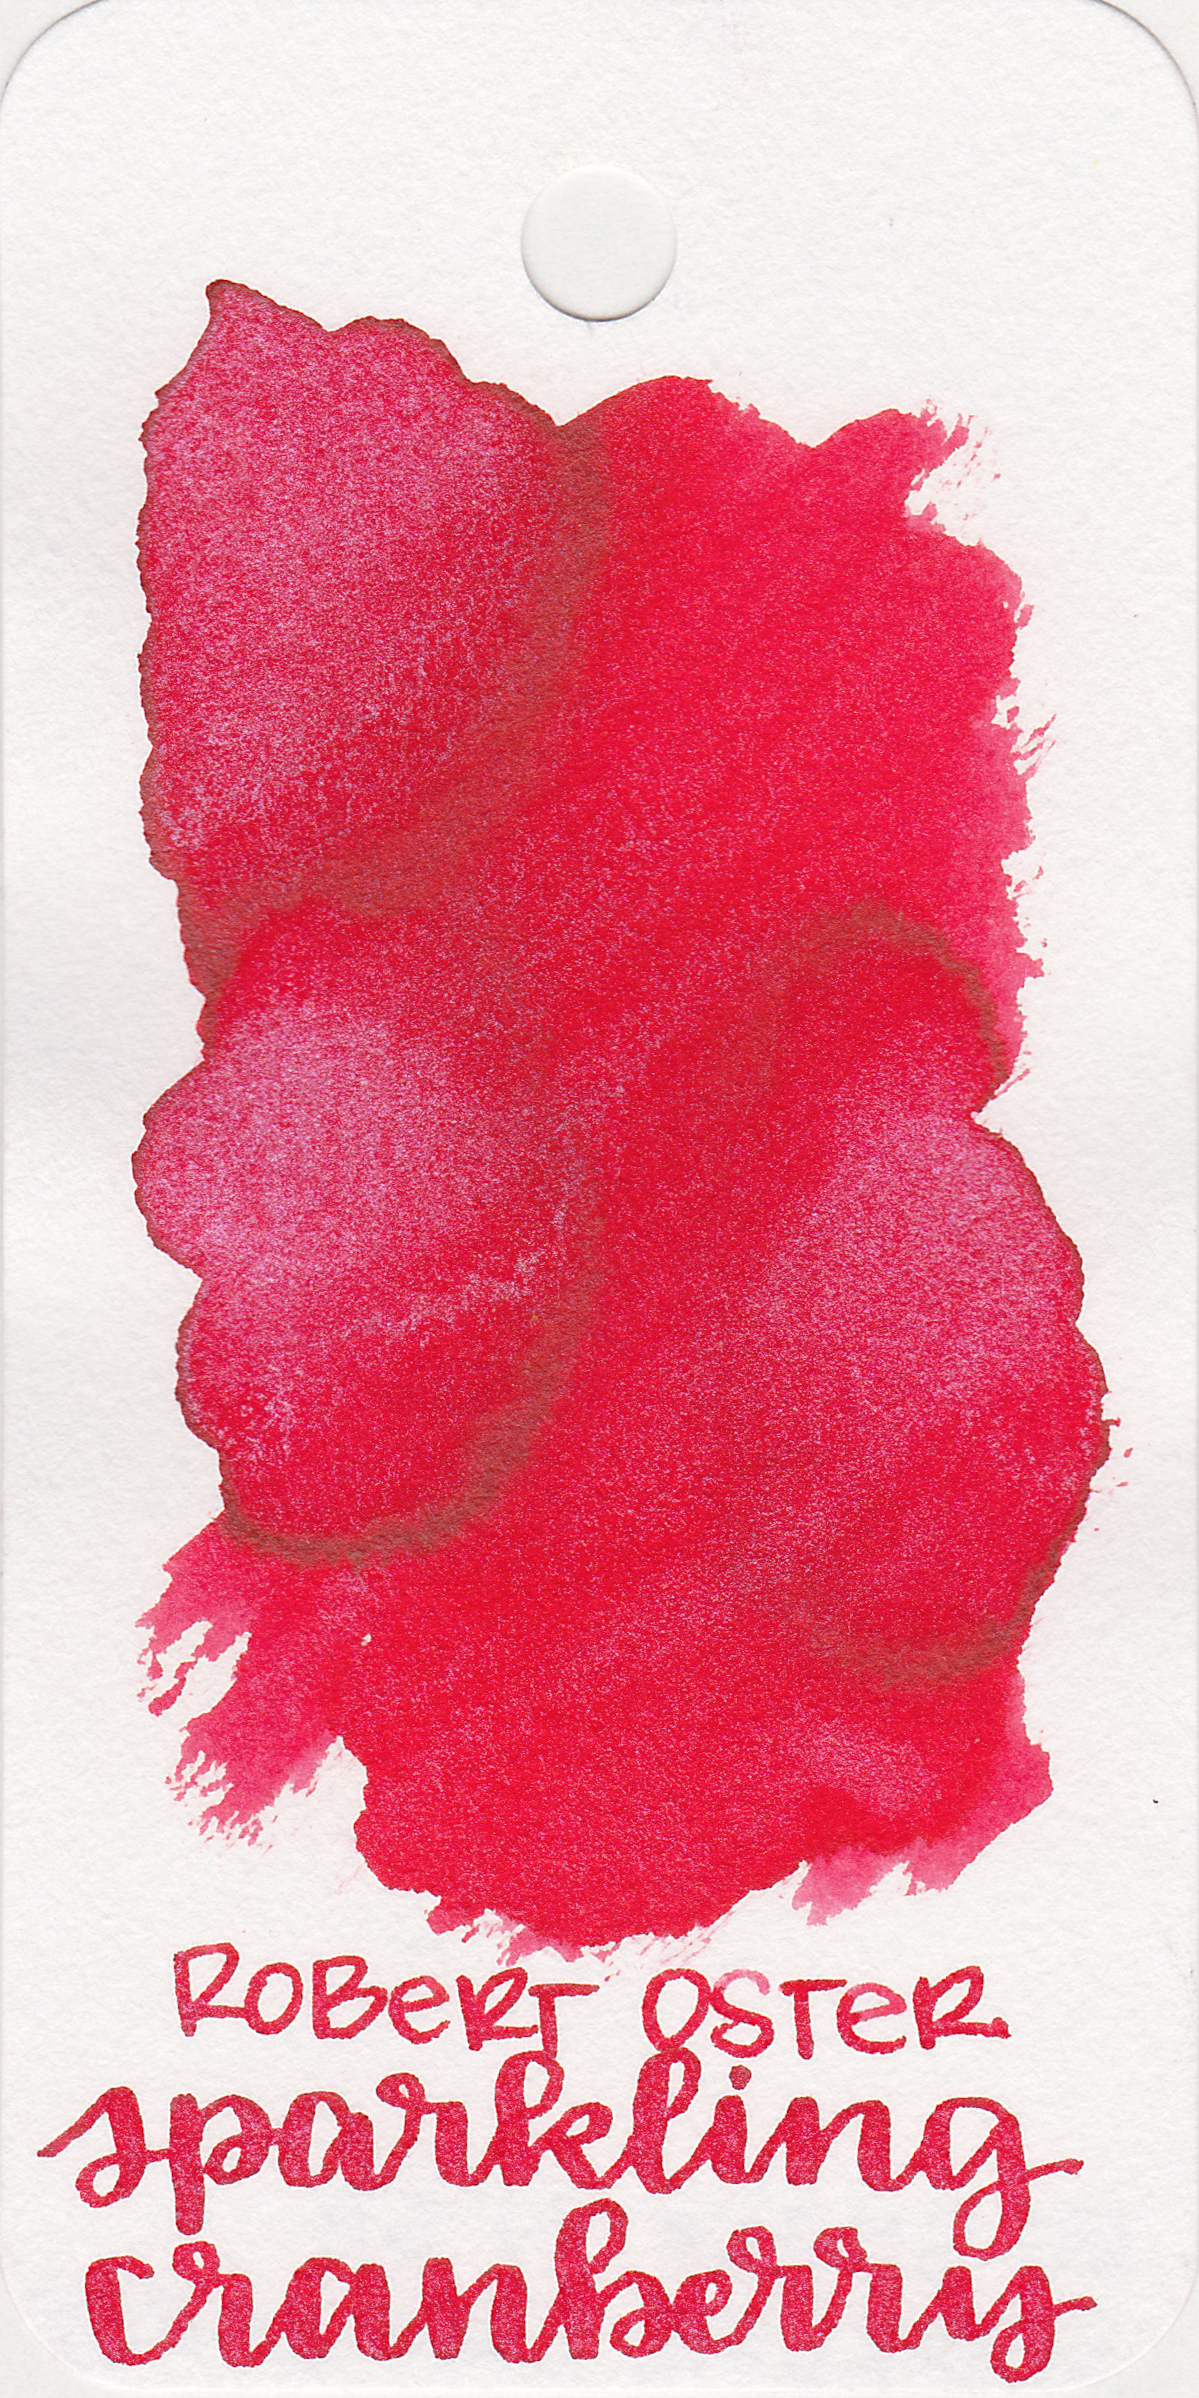 The color: - Sparkling Cranberry is a bright cherry red with plenty of silver shimmer. This ink would be great for Christmas cards.